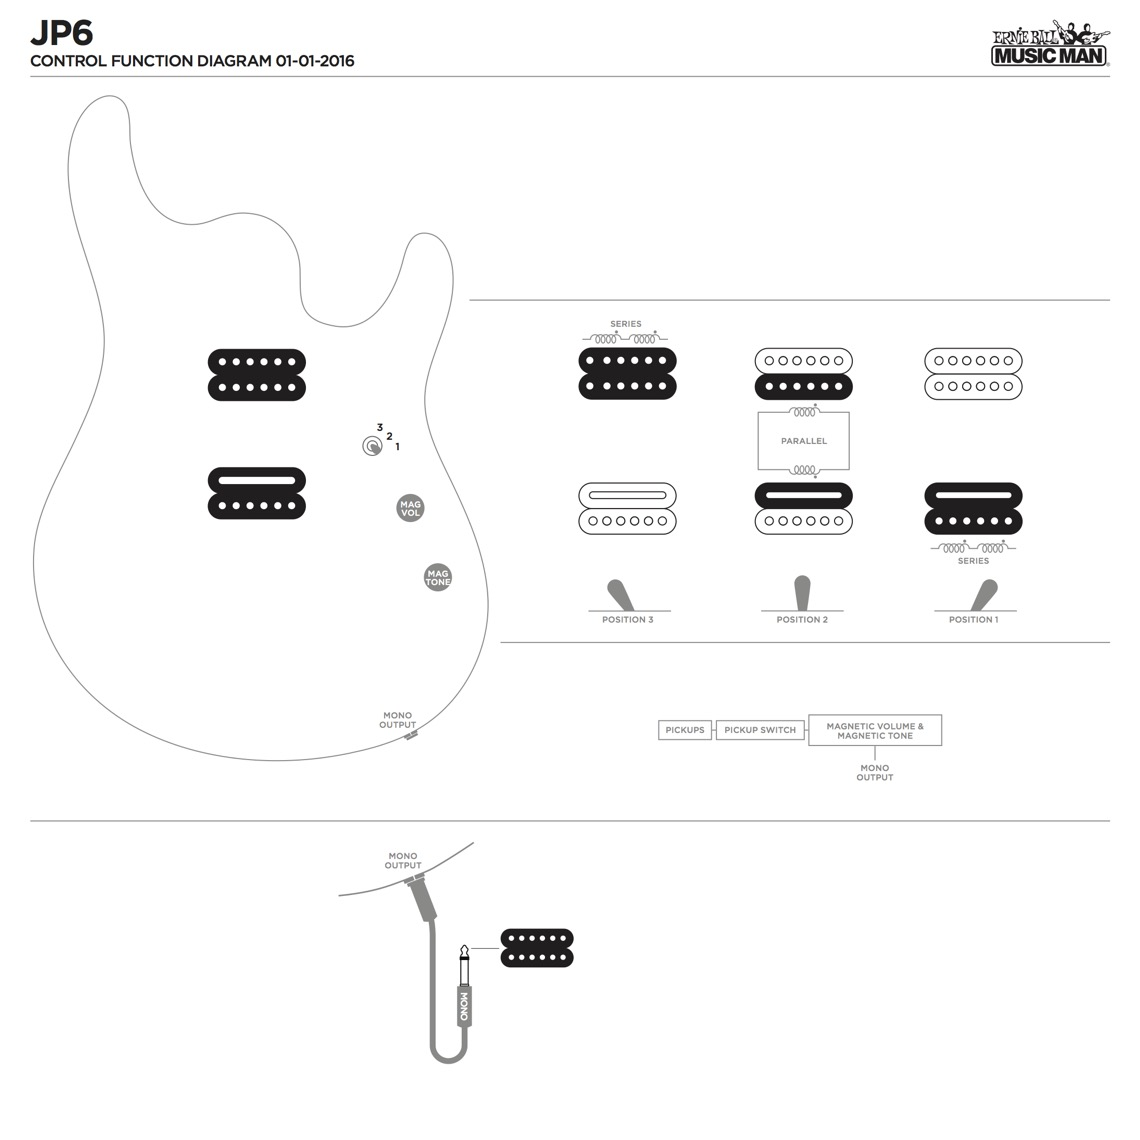 John Petrucci 6 | Guitars | Ernie Ball Music Man on fender champ wiring diagram, dc to ac inverter wiring diagram, amp rims, amp switch diagram, fender deluxe wiring diagram, amp ground diagram, fender vintage wiring diagram, amp speaker wire, fender amplifier wiring diagram,